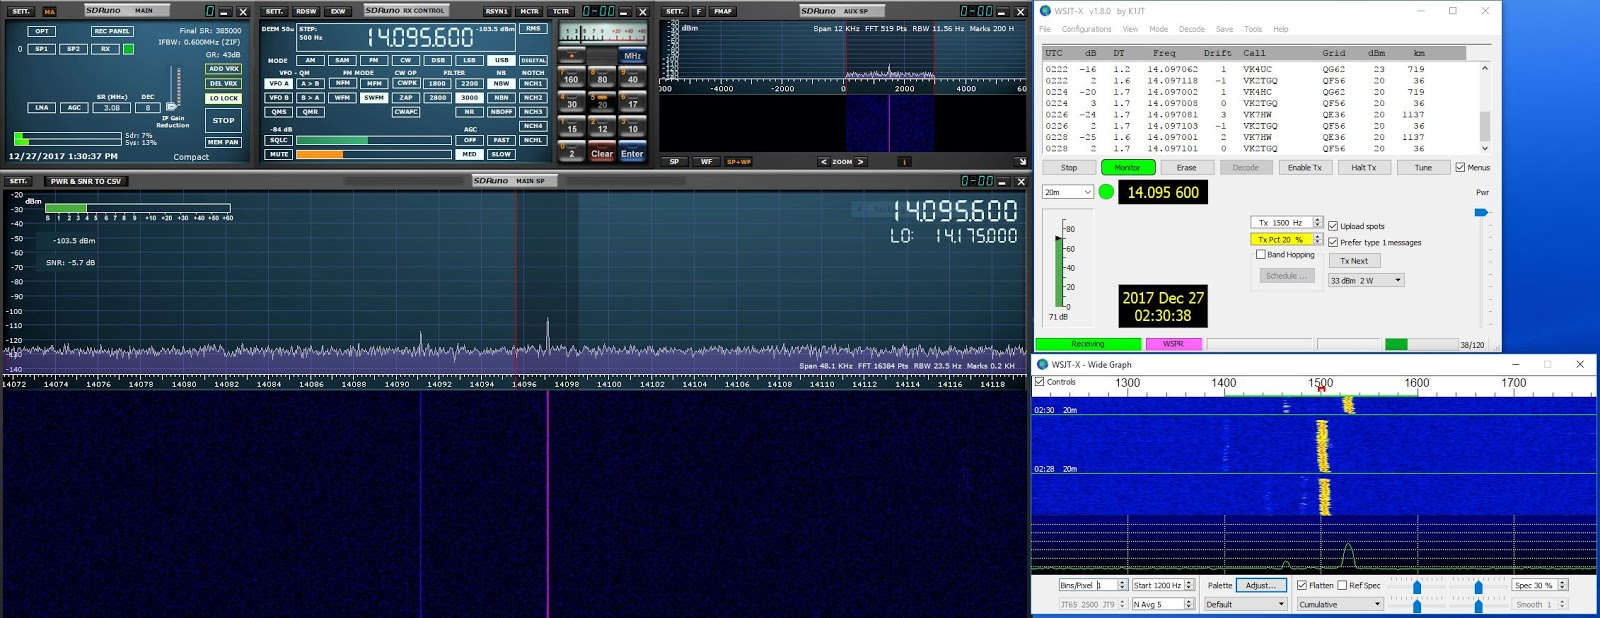 marxy's musing on technology: Decoding WSPR from an SDR on